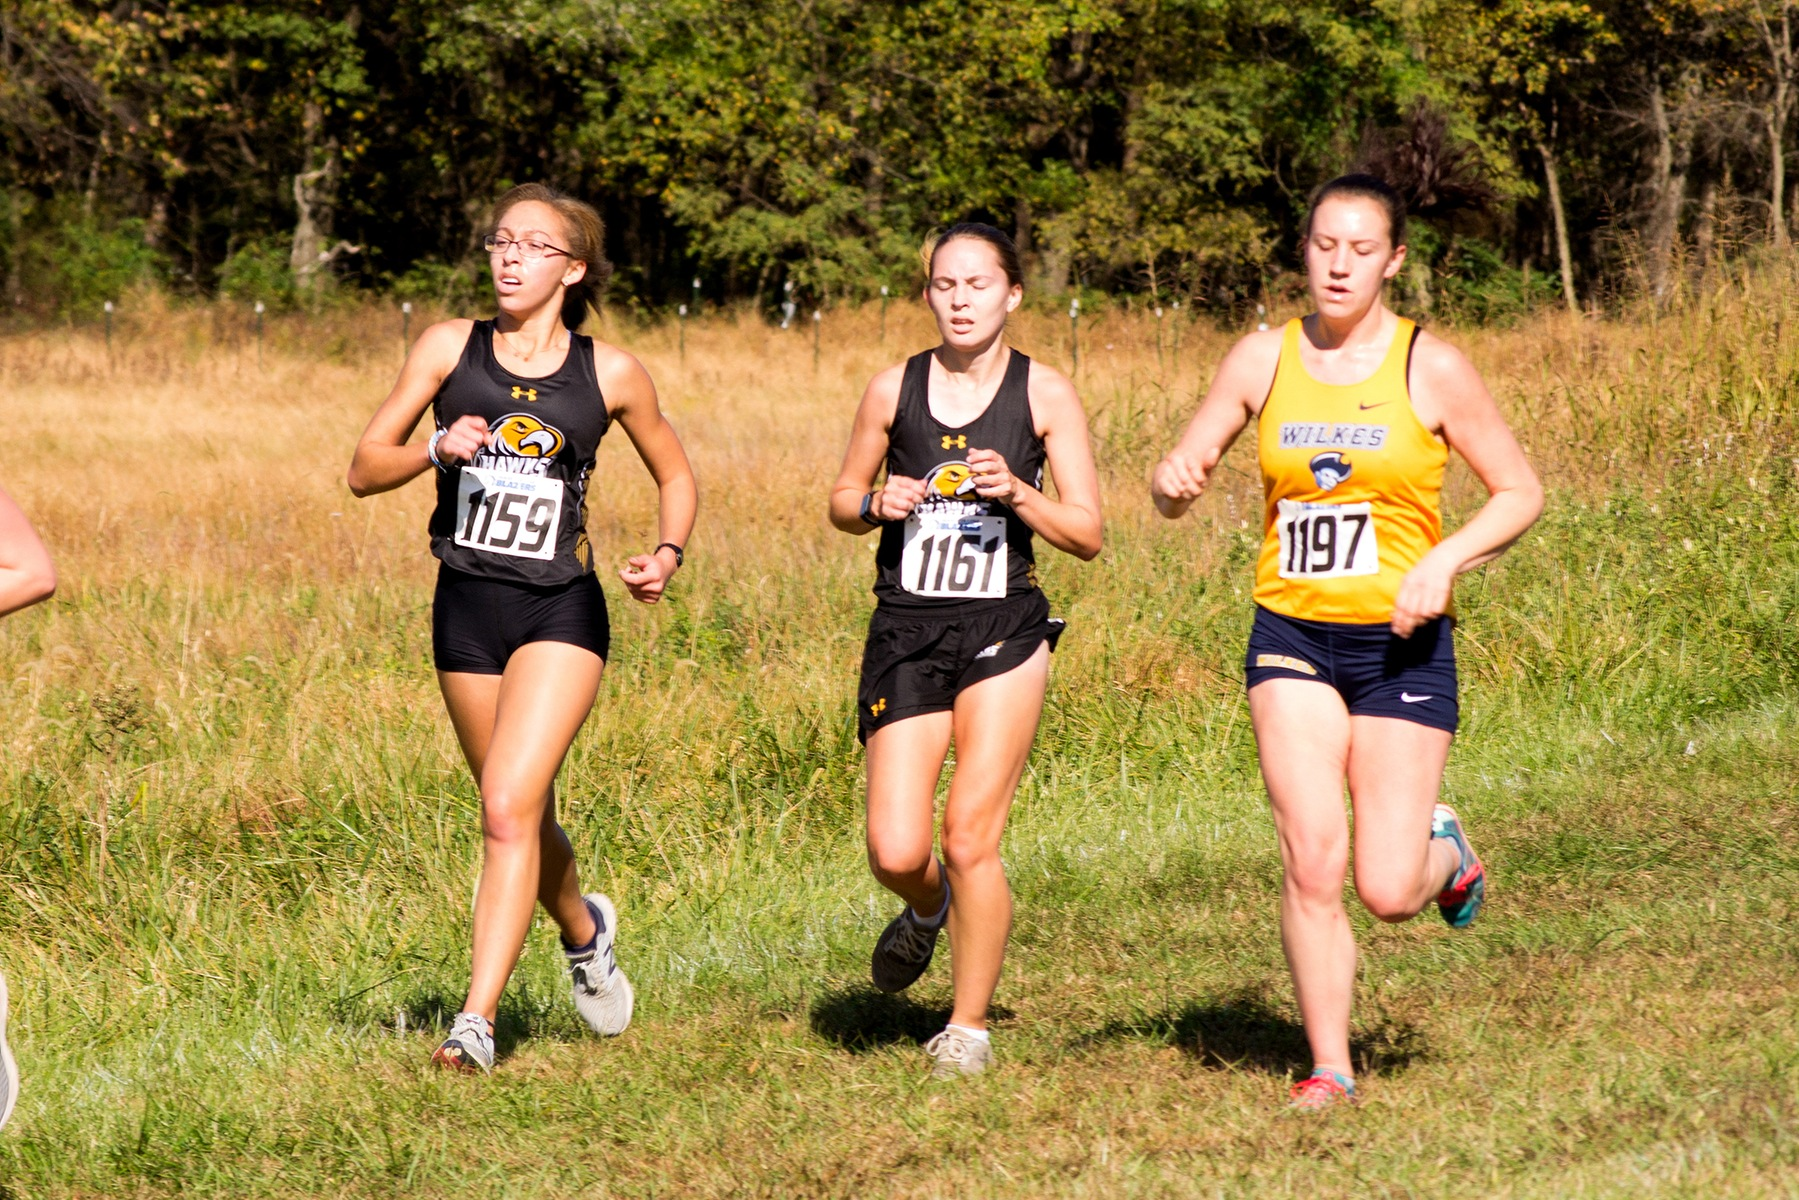 Three Runners Post Season-Bests at Hood College Open